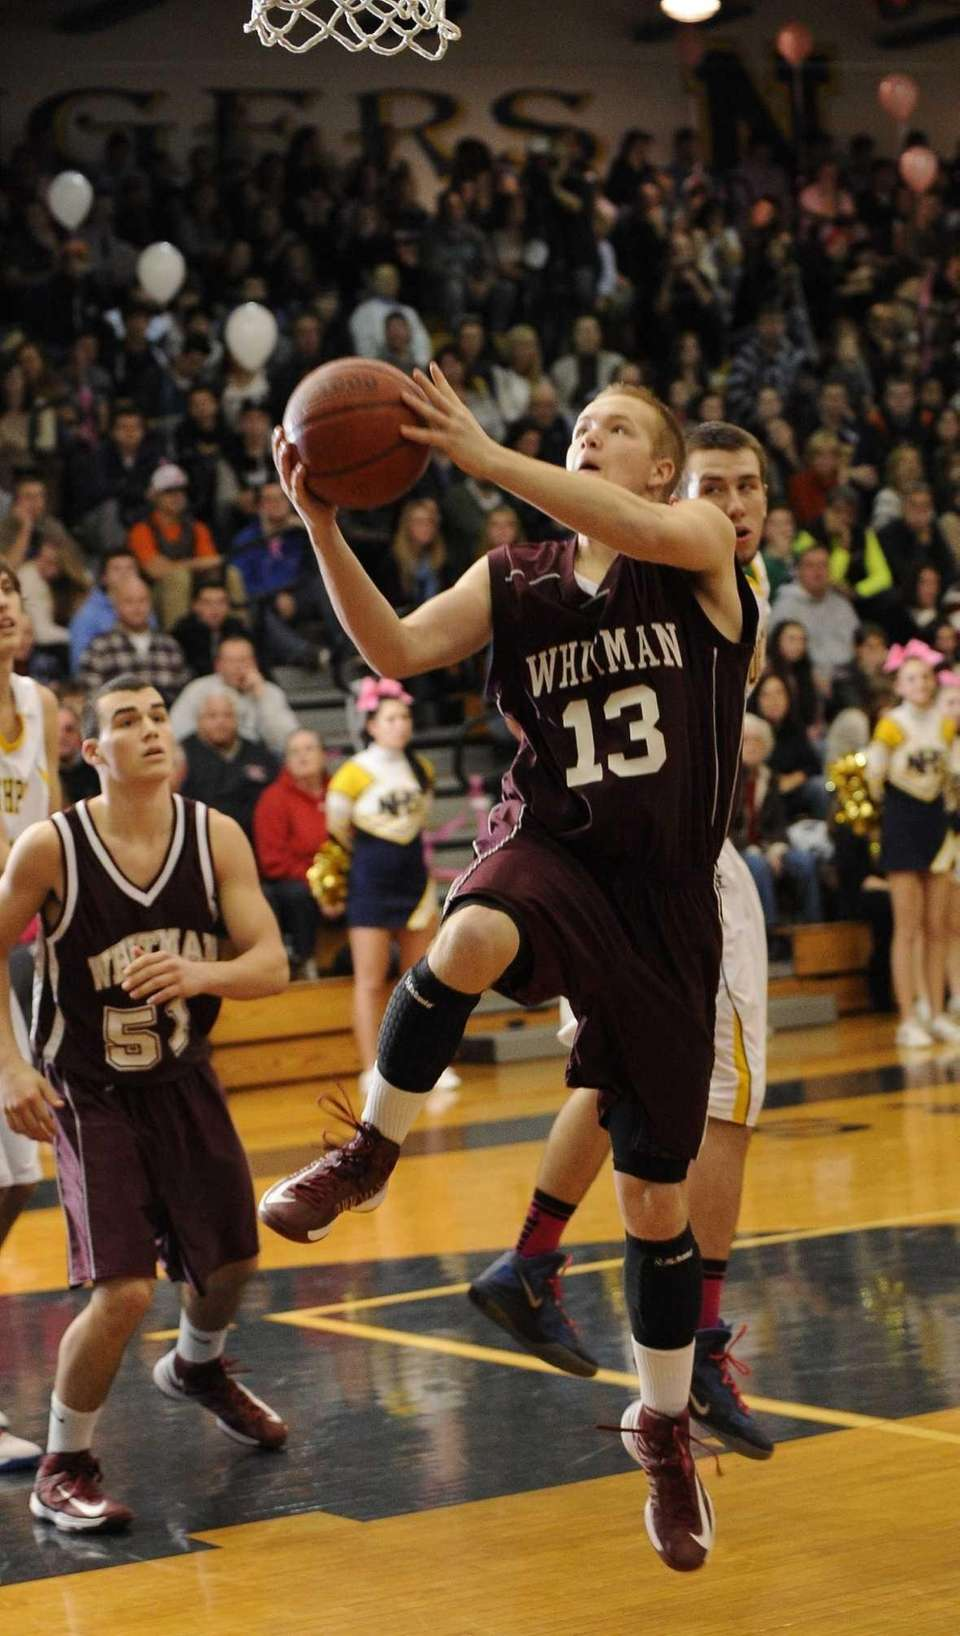 Whitman's Kevin Forland scores on a layup during